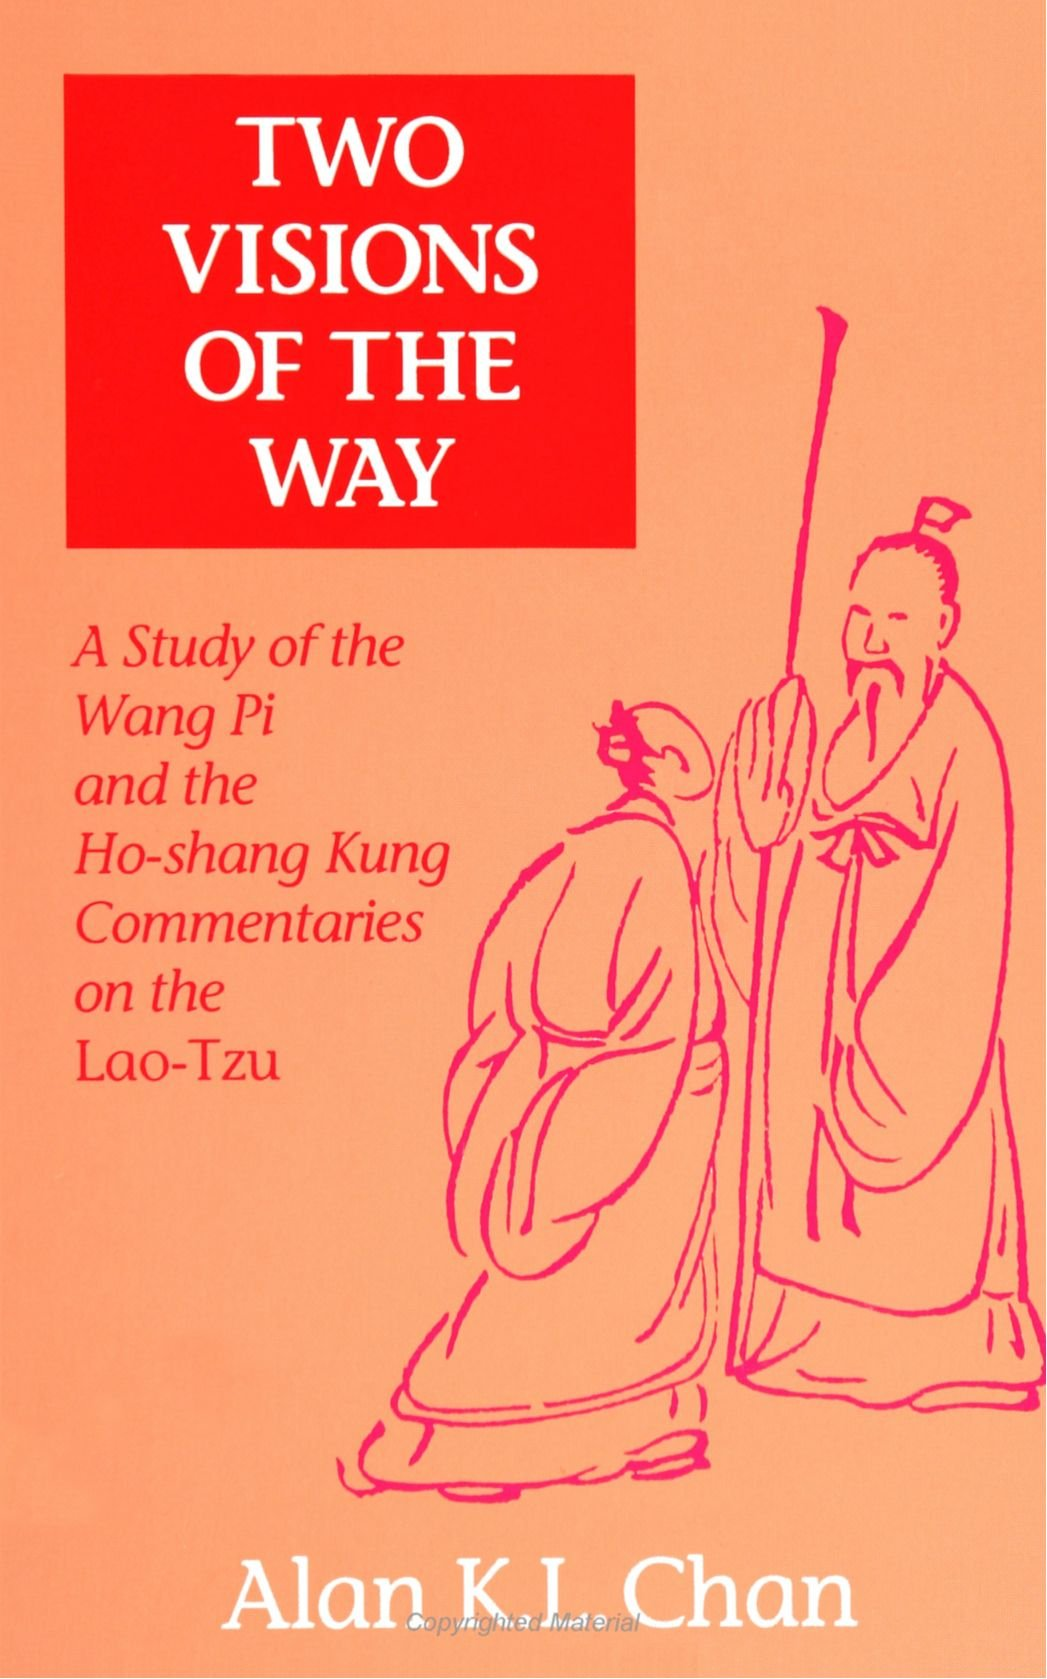 Two Visions of the Way: A Study of the Wang Pi and the Ho-Shang Kung Commentaries on the Lao-Tzu (SUNY Series in Chinese Philosophy and Culture)